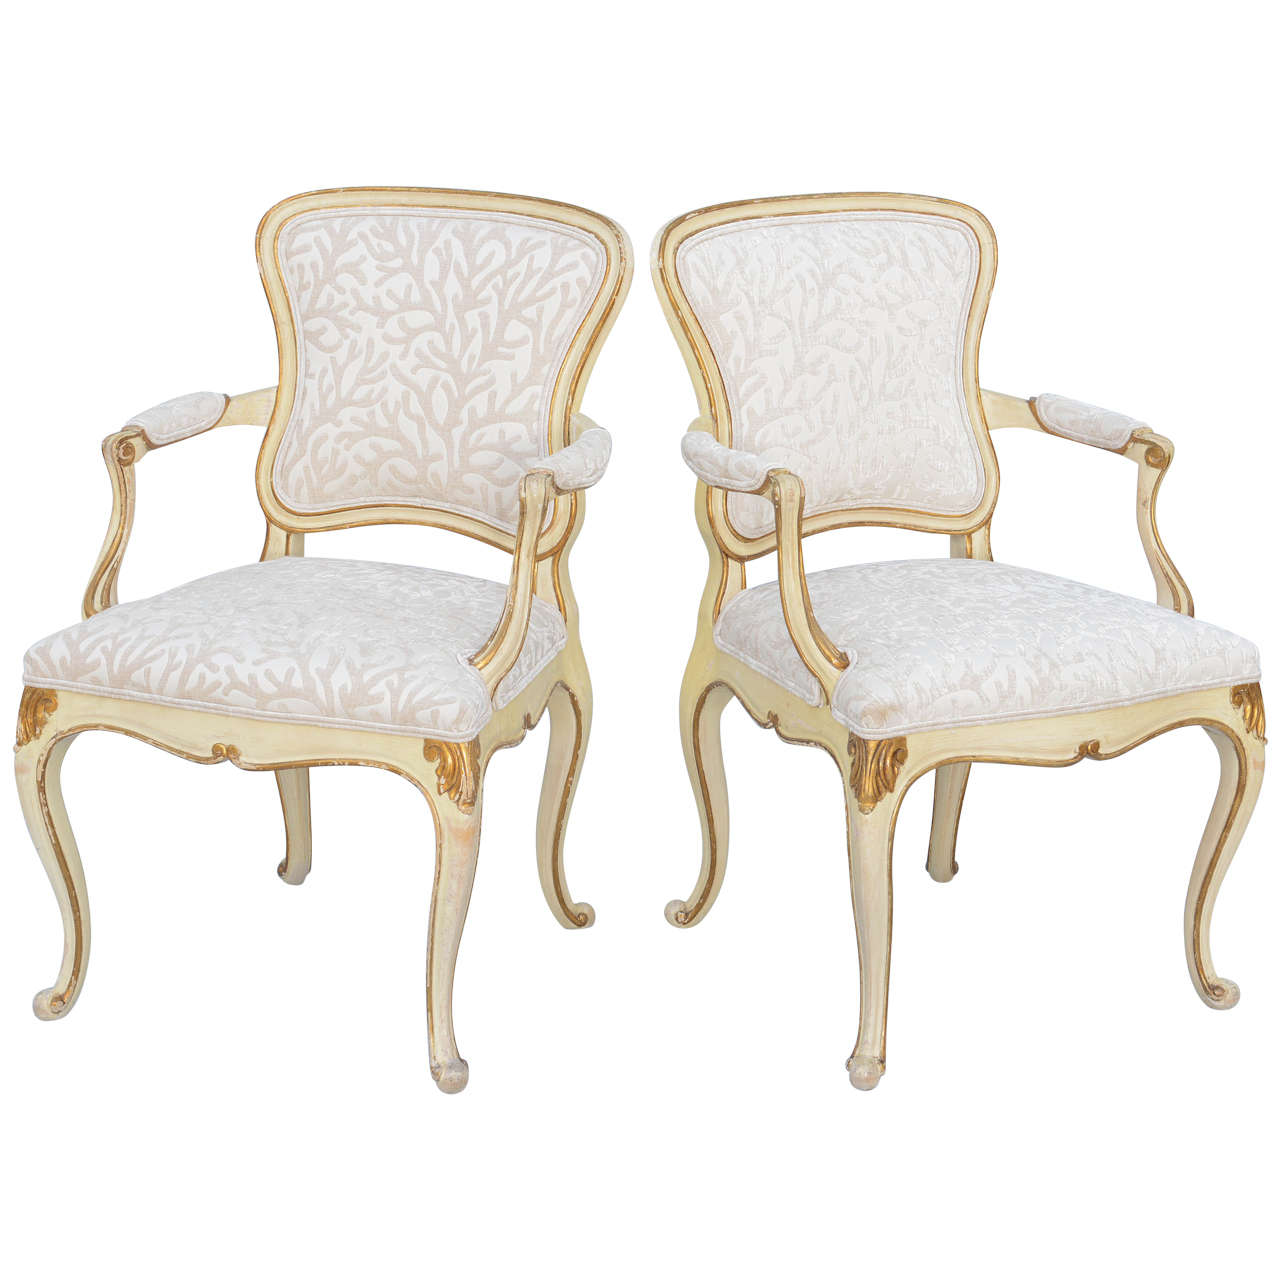 Pair of Painted & Parcel Gilt Armchairs